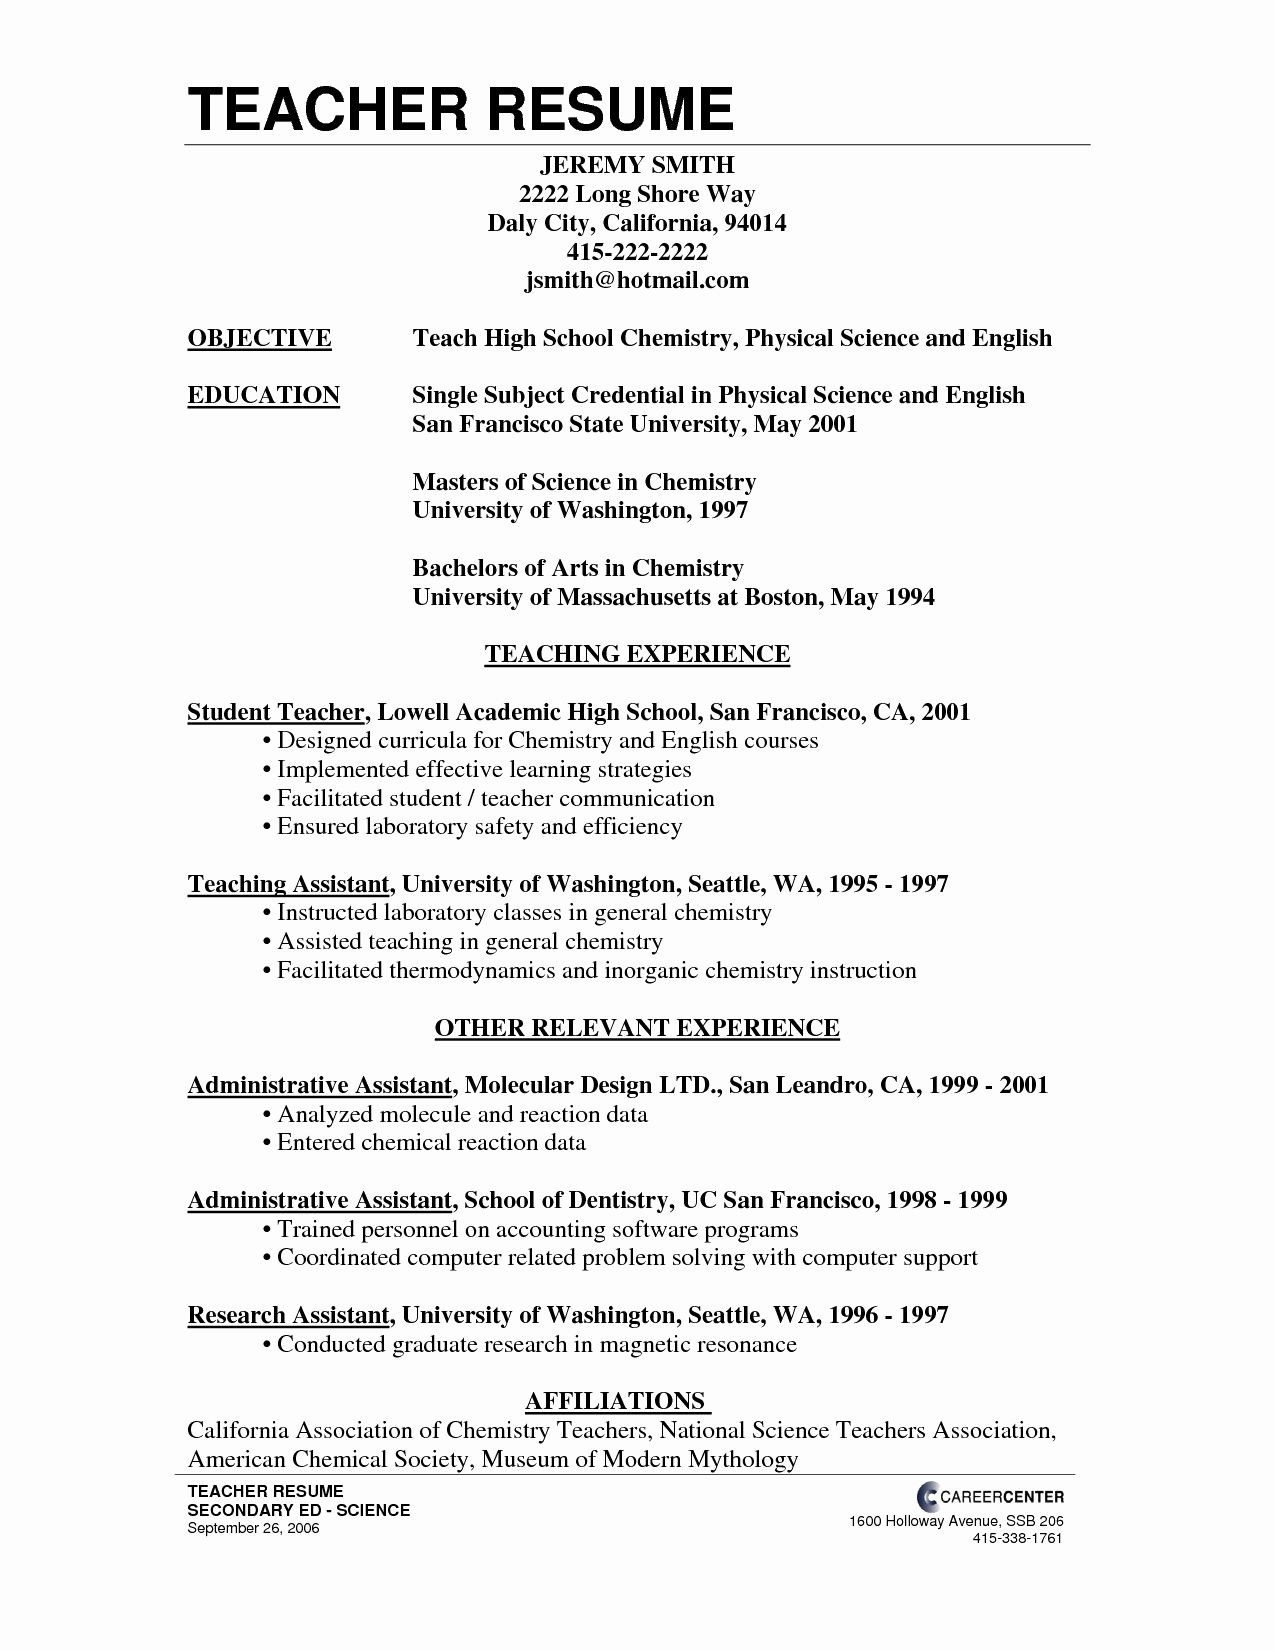 Free Sample Resume Cover Letter Template - Resume Cover Letter Example New Free Cover Letter Templates Examples